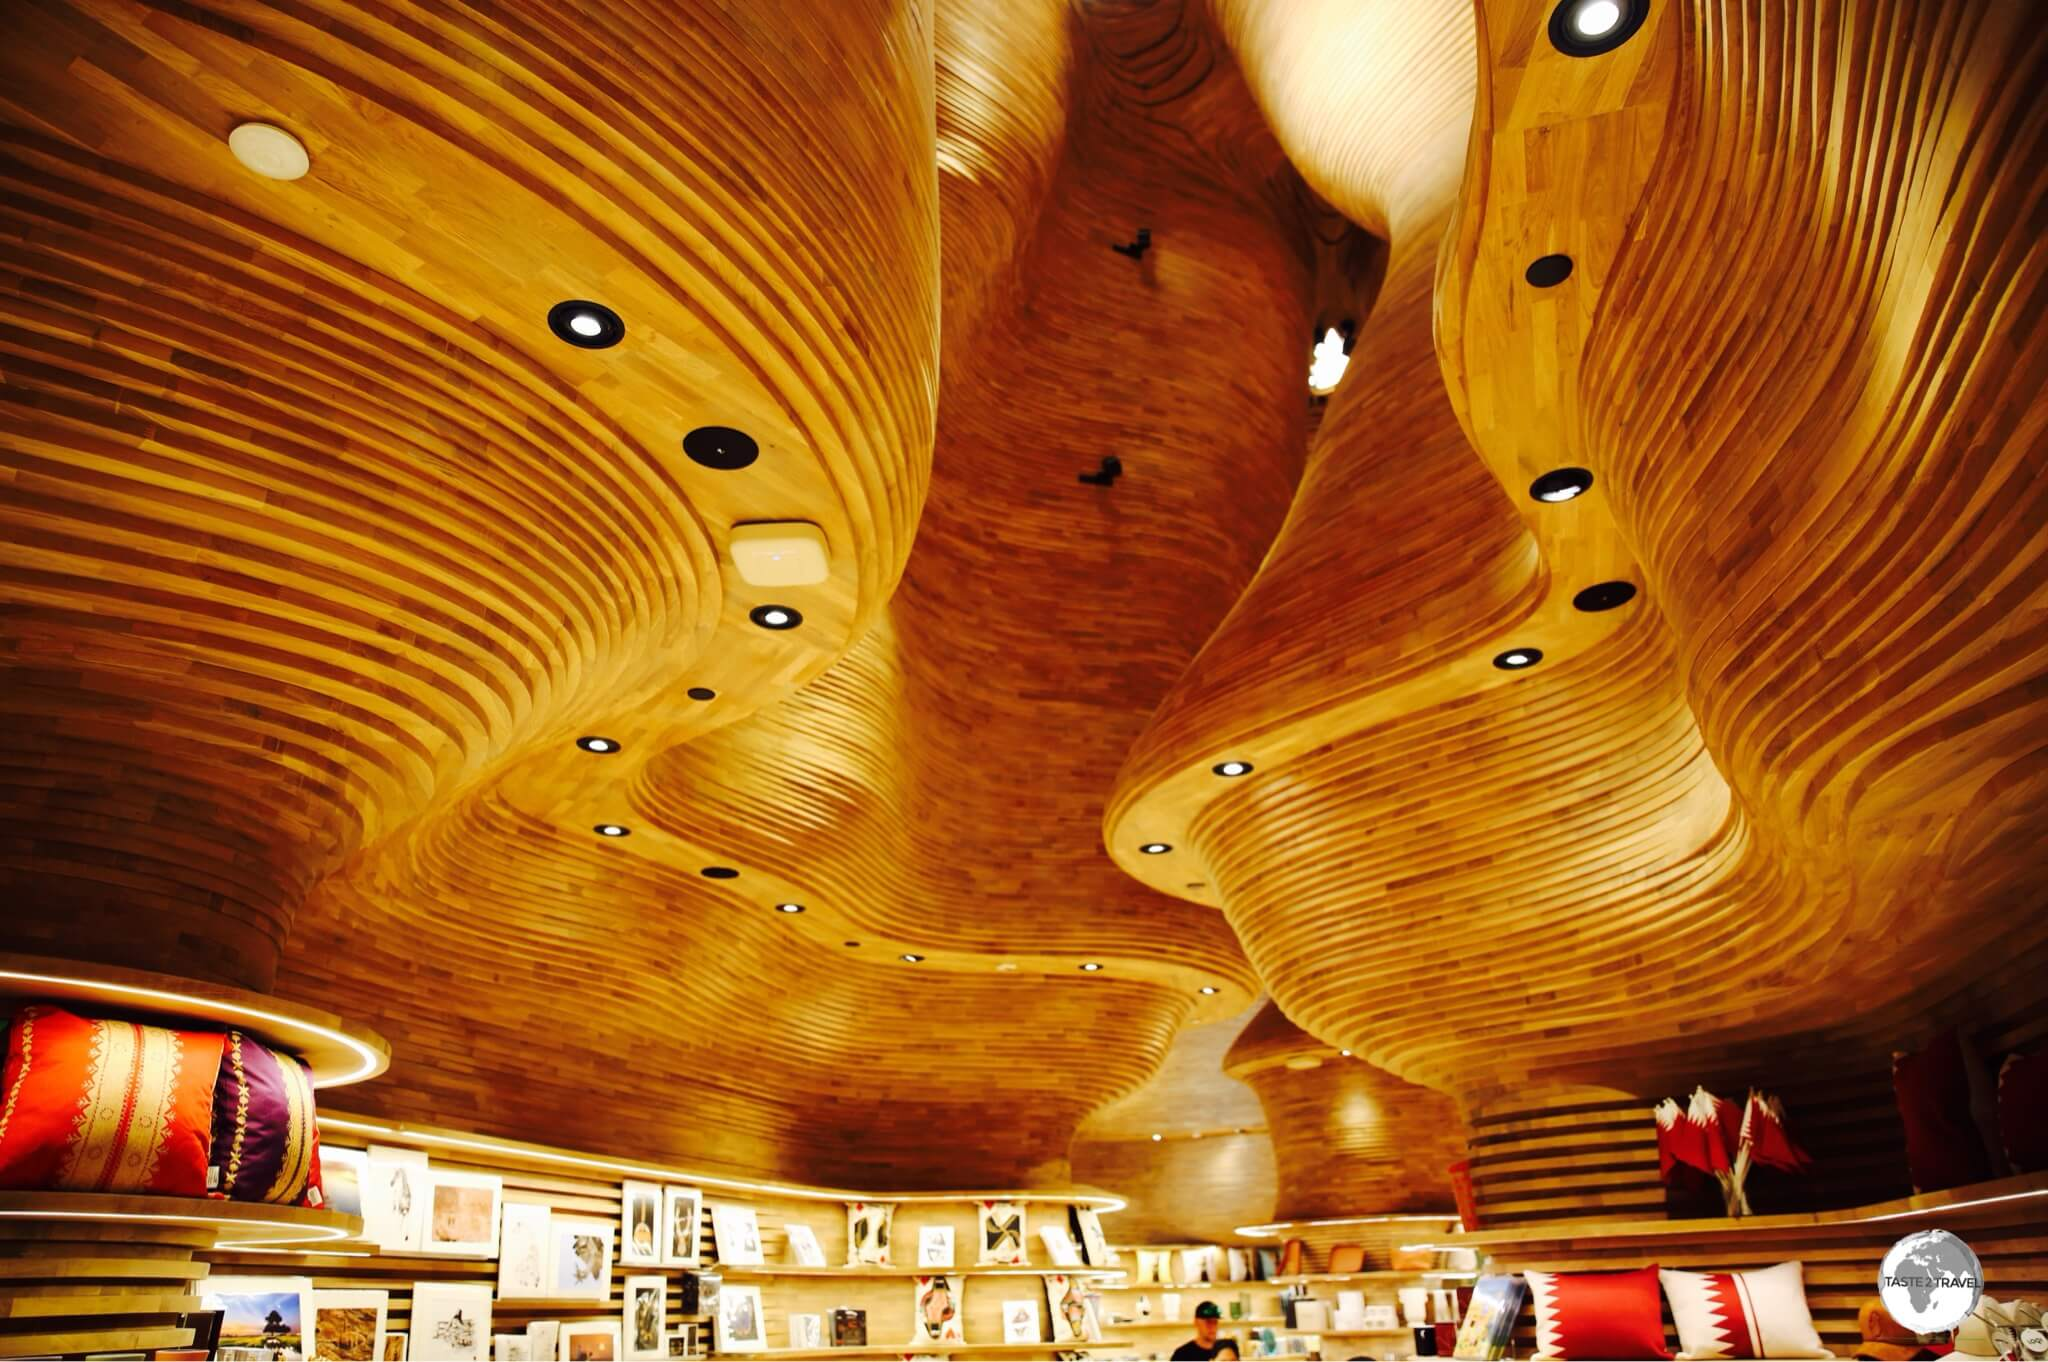 The striking wooden ceiling of the museum gift shop was designed by an Australian architectural firm.